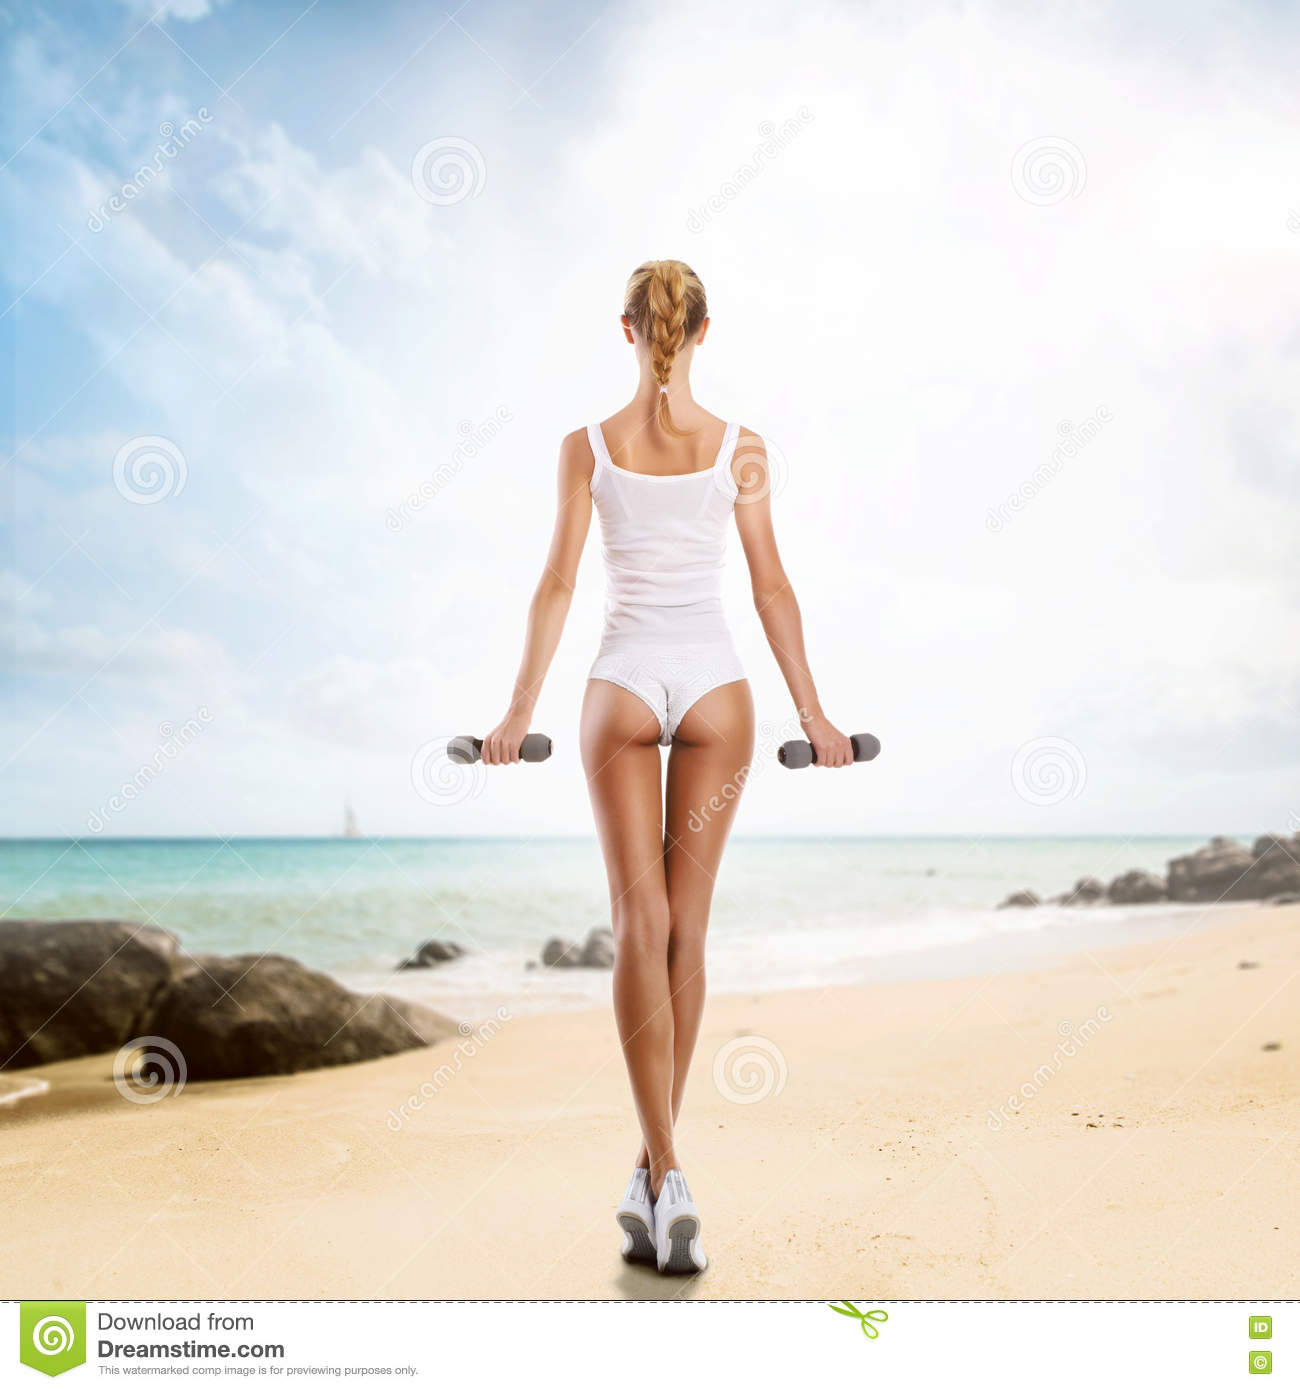 Woman With Beautiful Body In Bikini At Beach Stock Image: Beautiful Body Of Young And Woman Working Out On The Beach